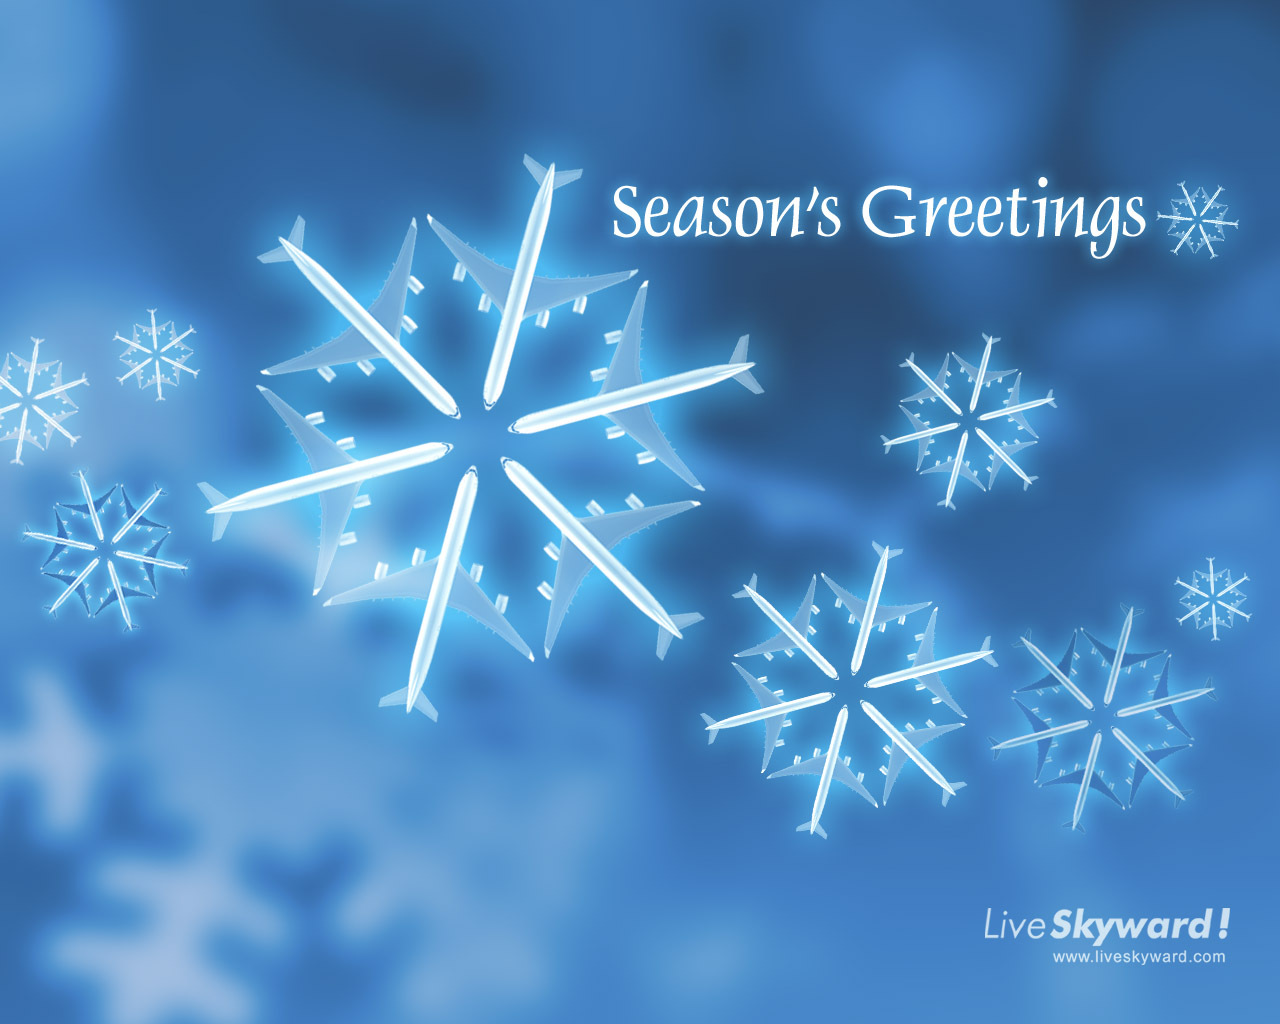 All Seasons Greetings Backgrounds Images Pics Comments